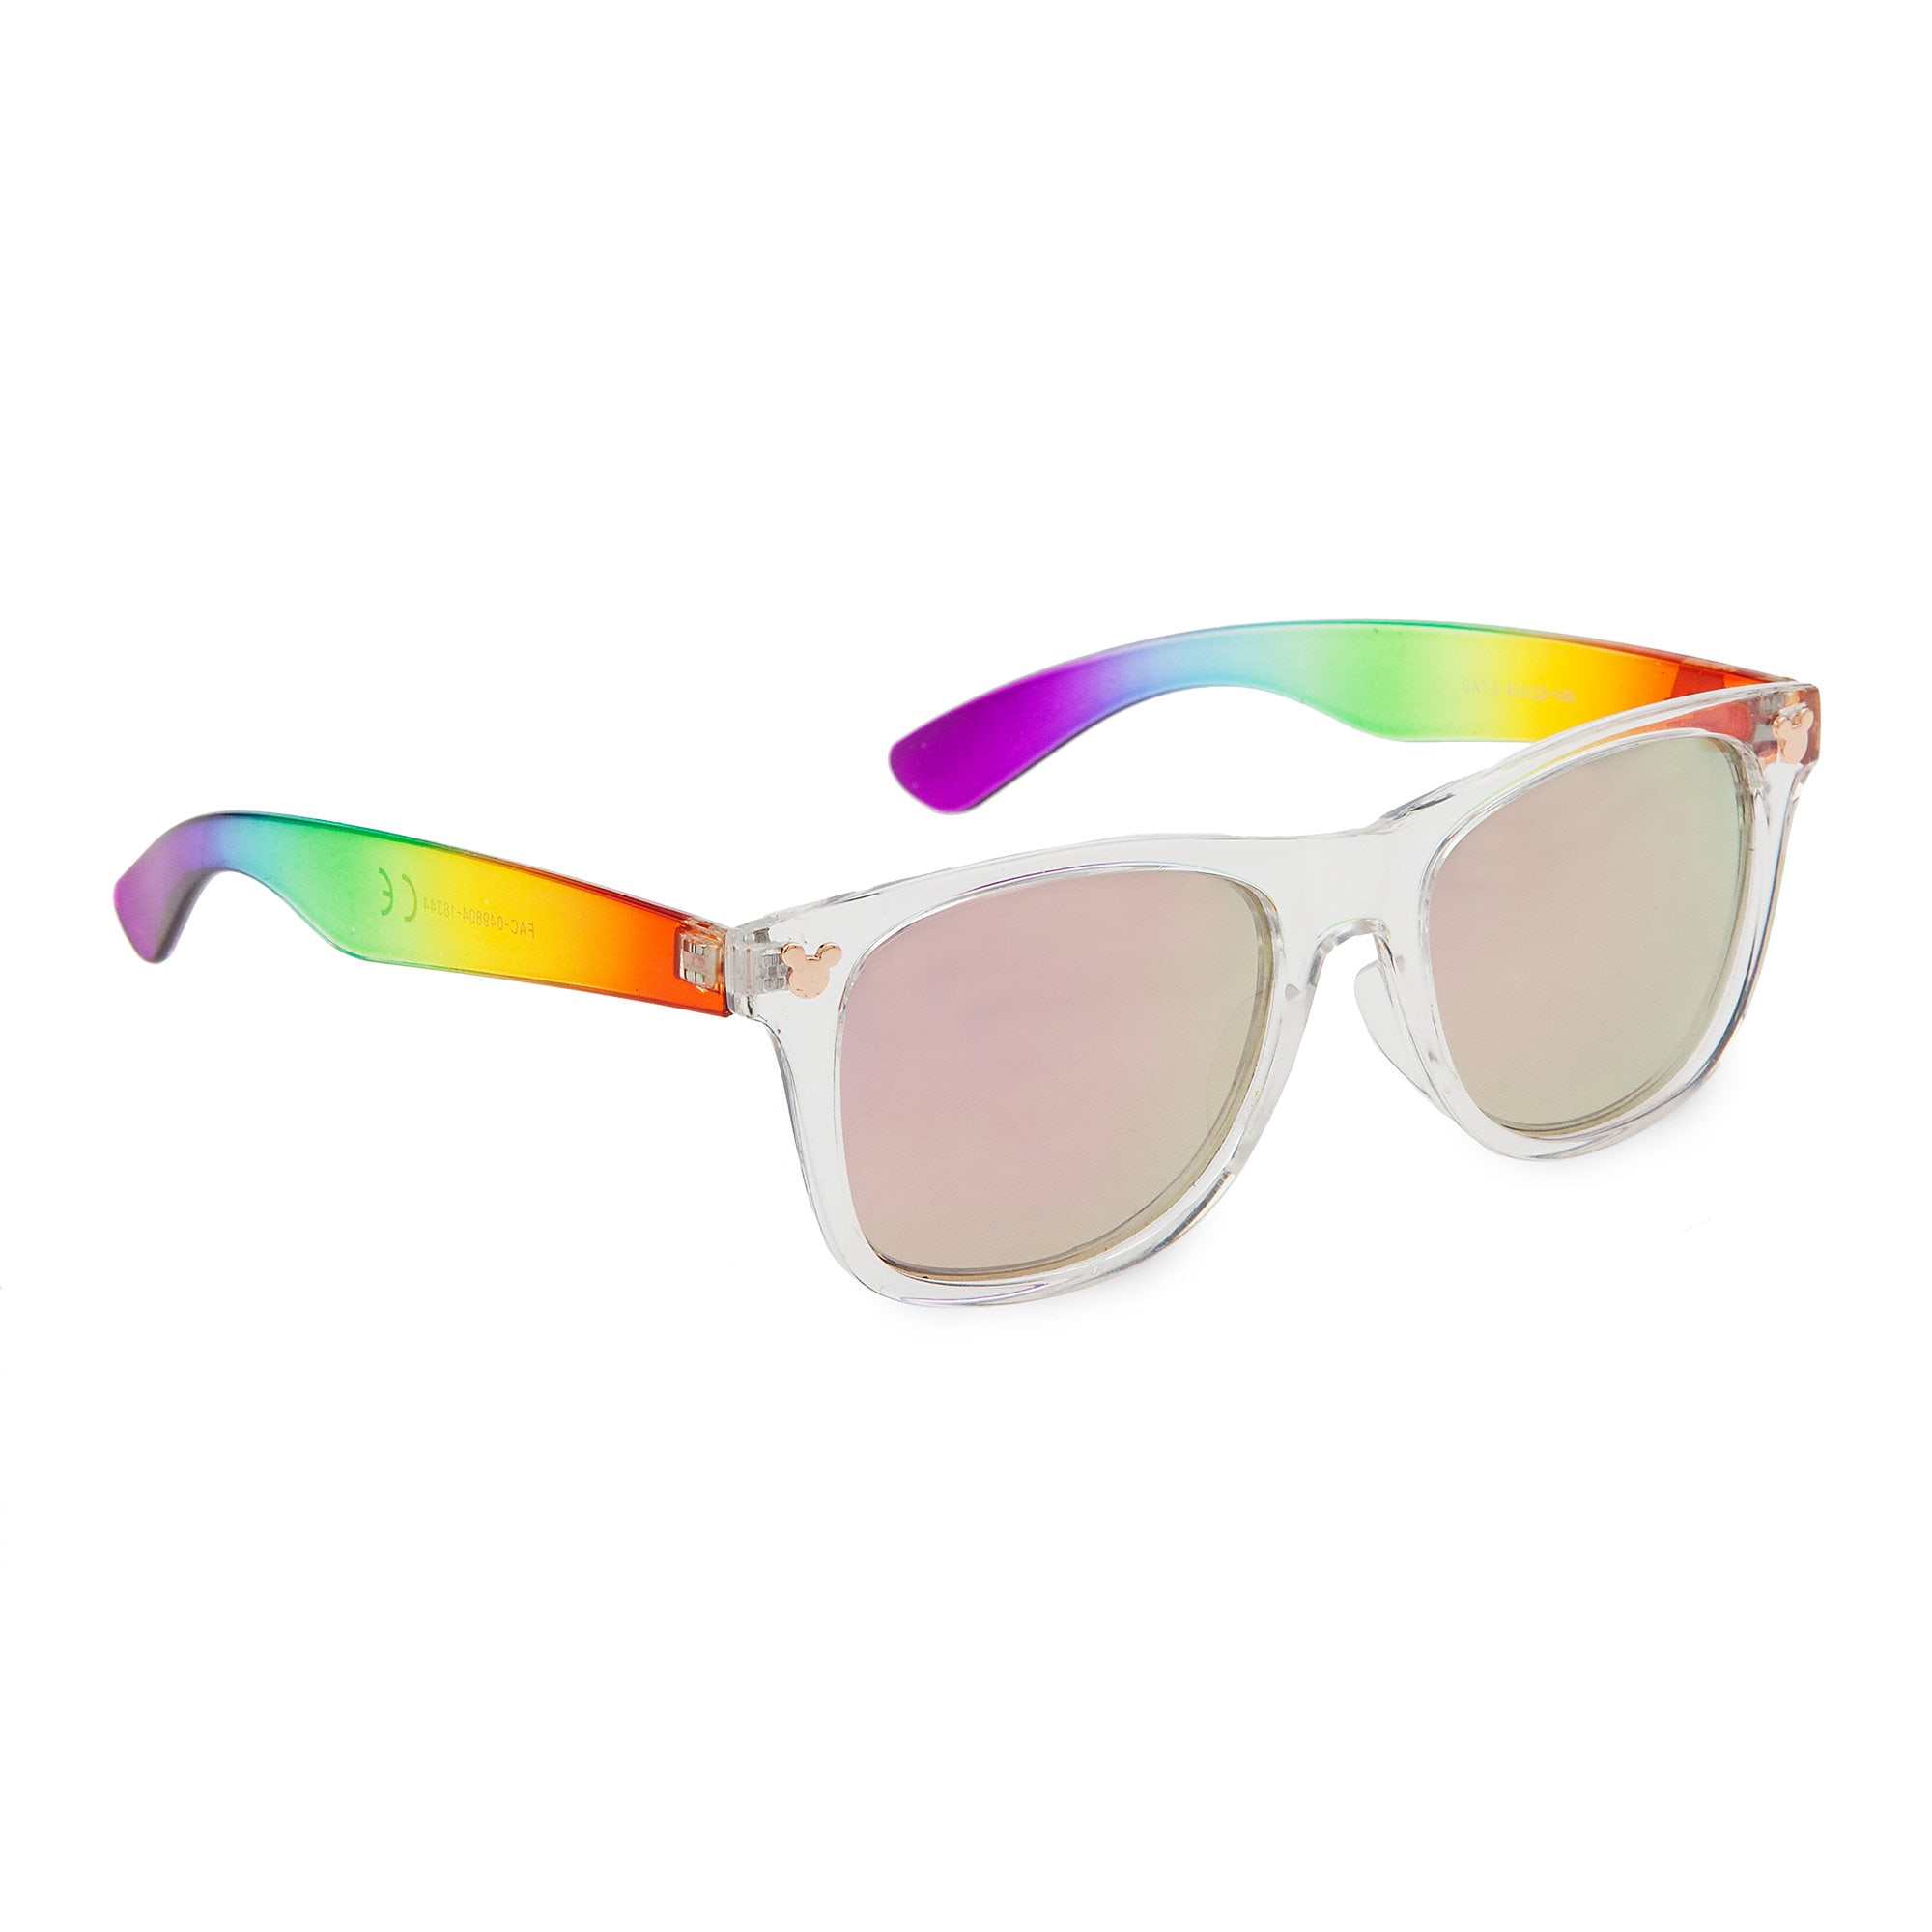 91bbadb67b06 Rainbow Disney Collection Mickey Mouse Sunglasses for Adults now available  for purchase